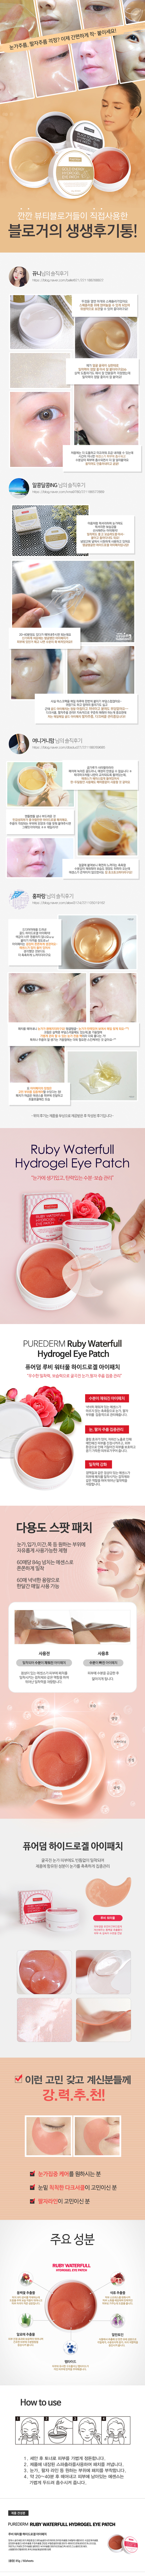 Purederm Ruby Waterfull Hydrogel Eye Patch 84g 60 Sheets Weight Mask Apply The Any Where Wrinkles Are Such As Areas Or Around Lips 4 After About 20 To 40 Minutes Remove Essence Remaining On Skin